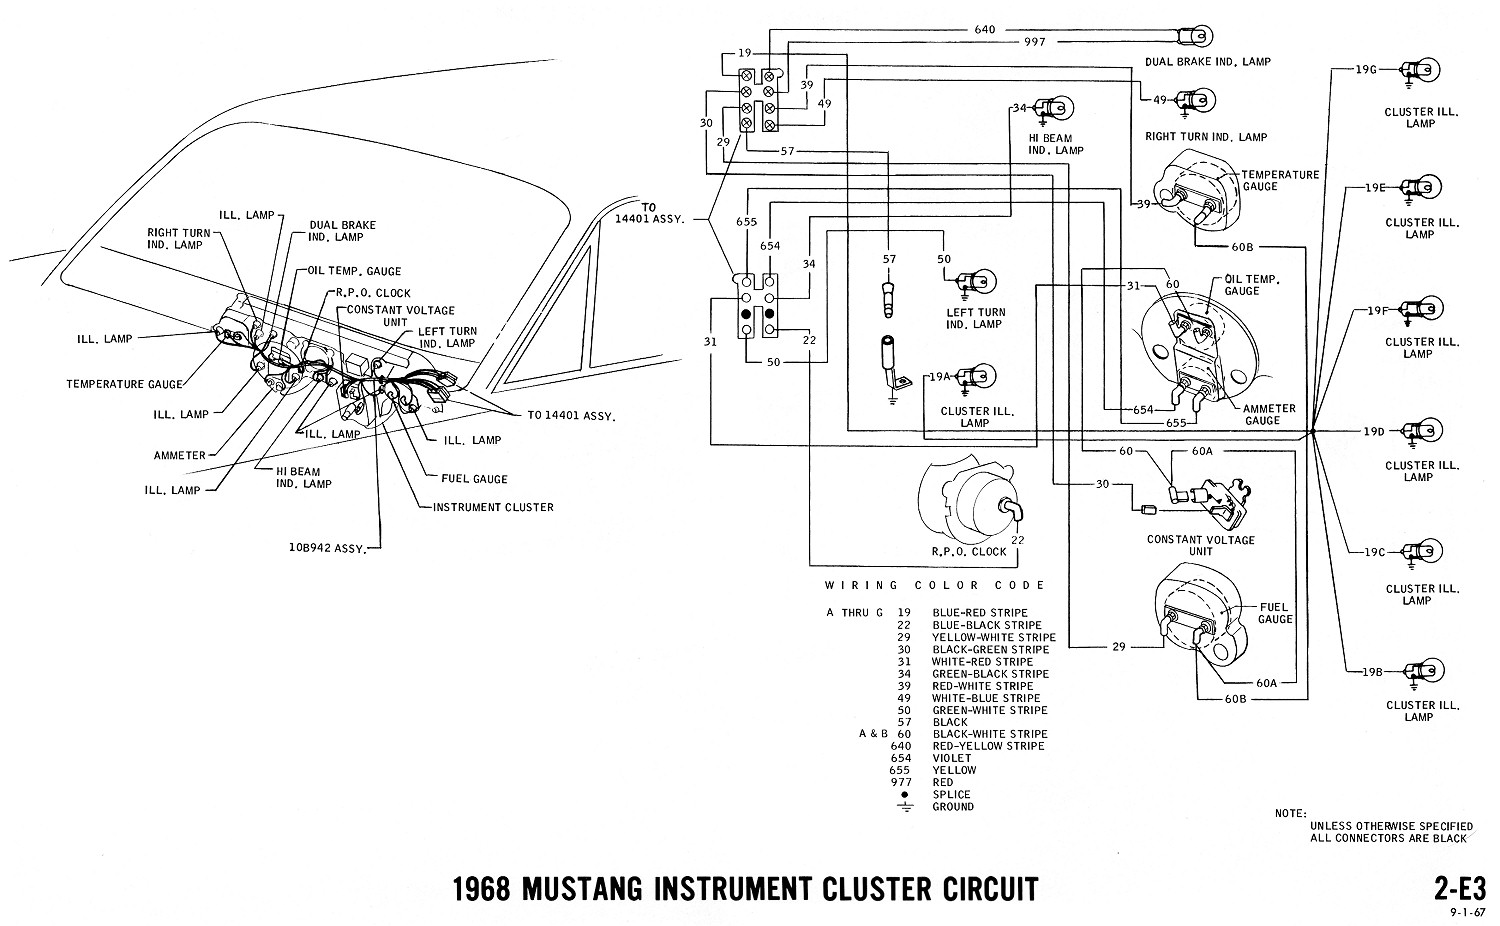 85 mustang wiring diagram just wiring data fender mustang wiring diagram  1968 mustang wiring diagrams evolving